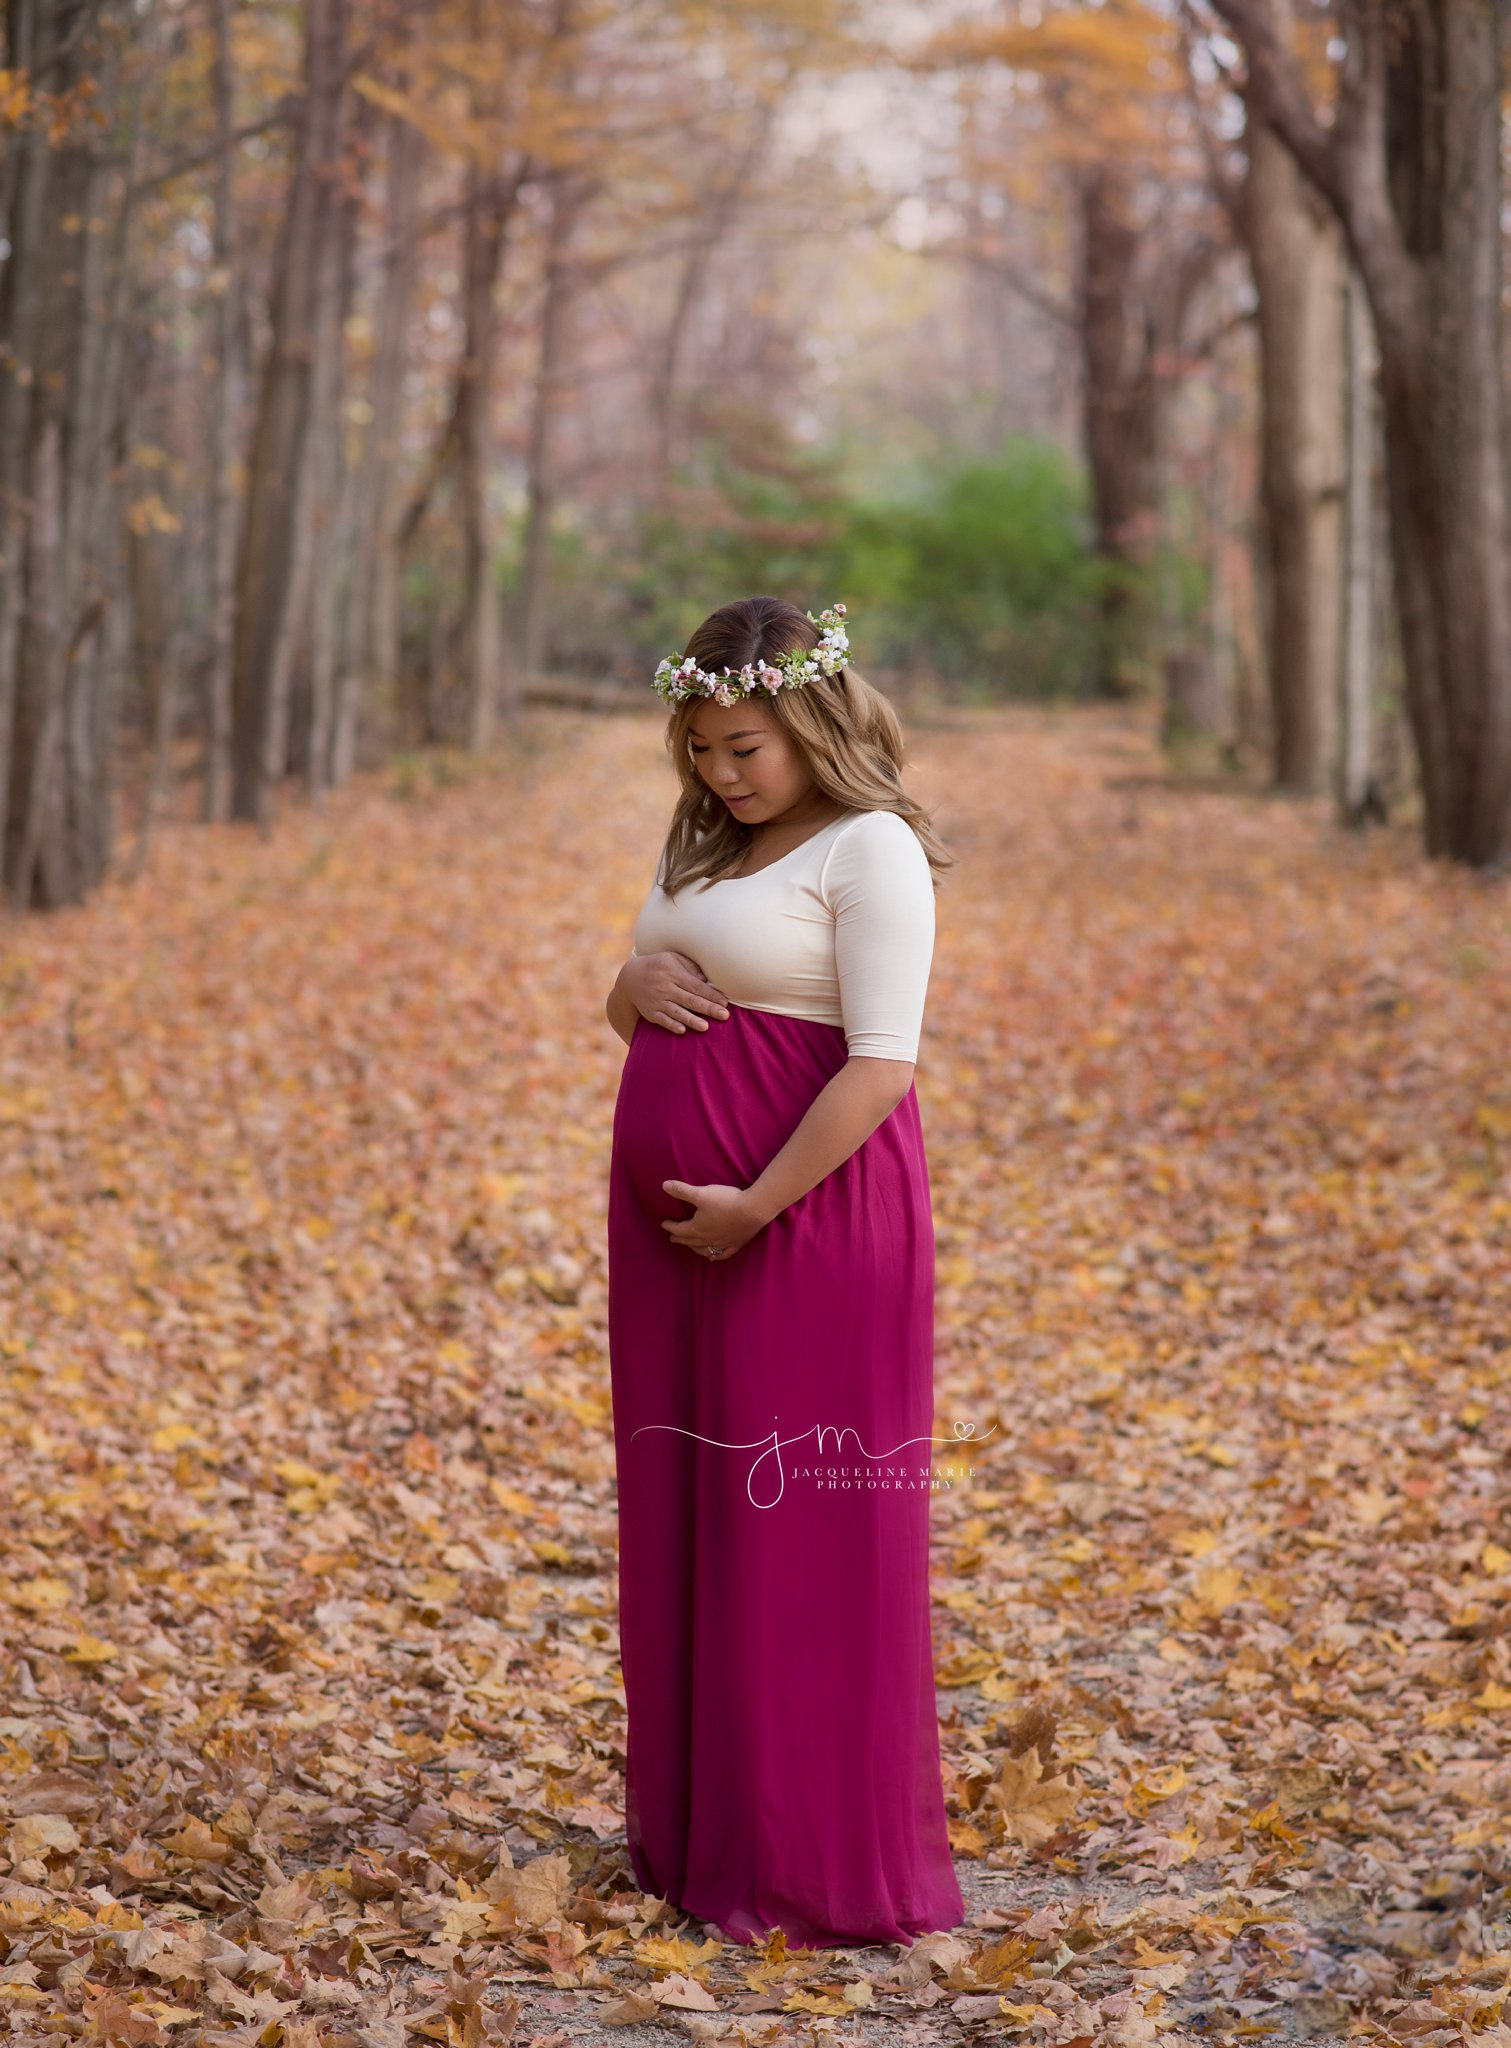 columbus ohio newborn photographer features image of pregnant mother for pregnancy pictures wearing fuchsia pink dress at high banks metro park in lewis center ohio